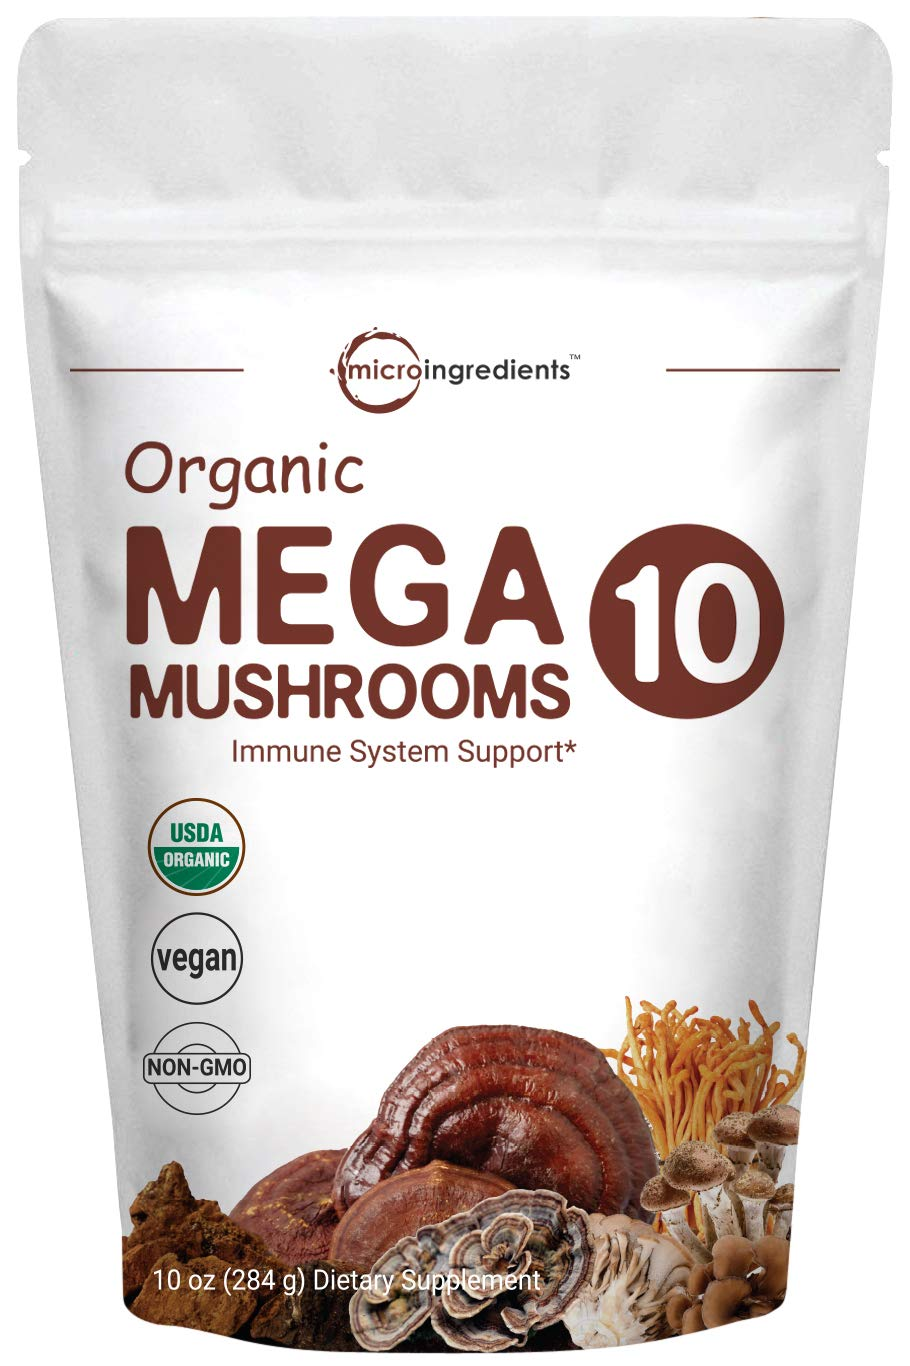 Sustainably US Grown, Organic Mega 10 Mushroom Extract Powder, 10 Ounce 284g , Lion s Mane, Chaga, Turkey Tail, Cordyceps, Shiitake, Maitake, Reishi Mushroom and More, No GMOs Vegan Friendly